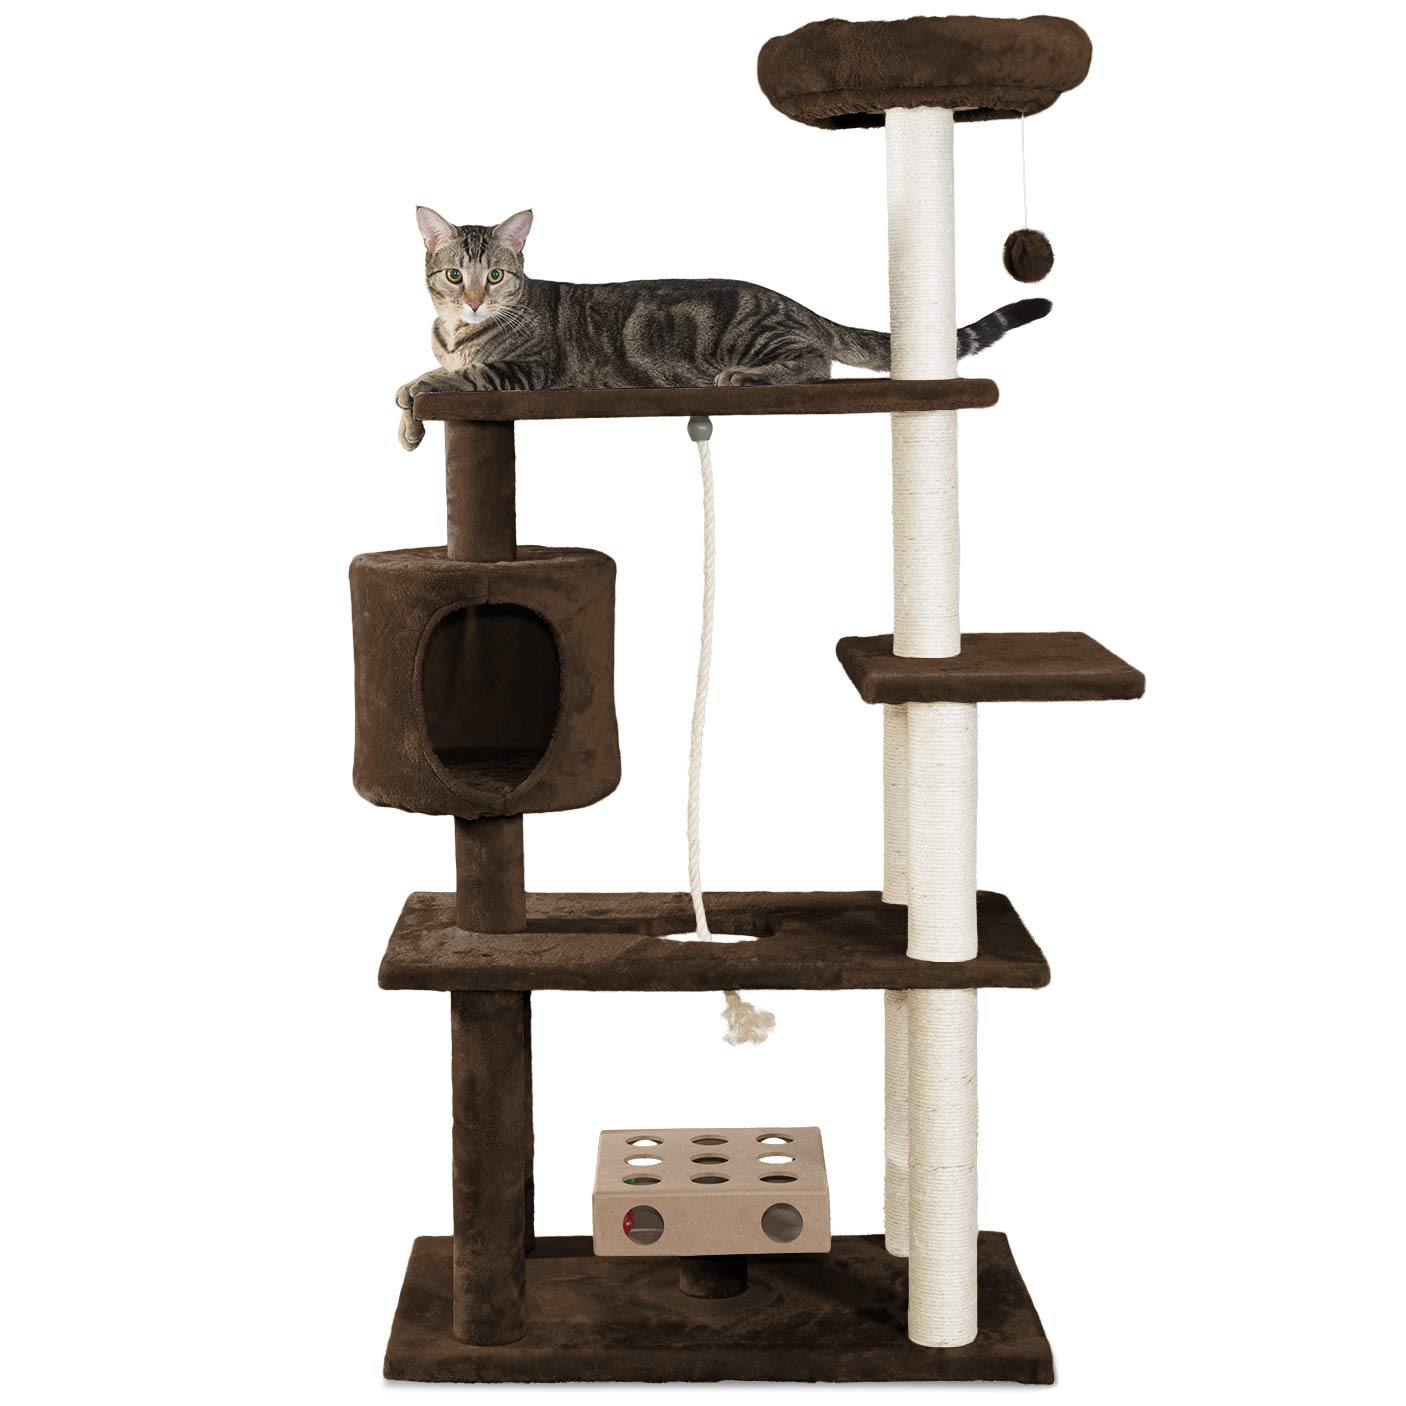 Brown Deluxe Playground Large Brown Deluxe Playground Large Furhaven Pet Products Tiger Tough Brown Deluxe Playground Cat House Furniture Tree, Large